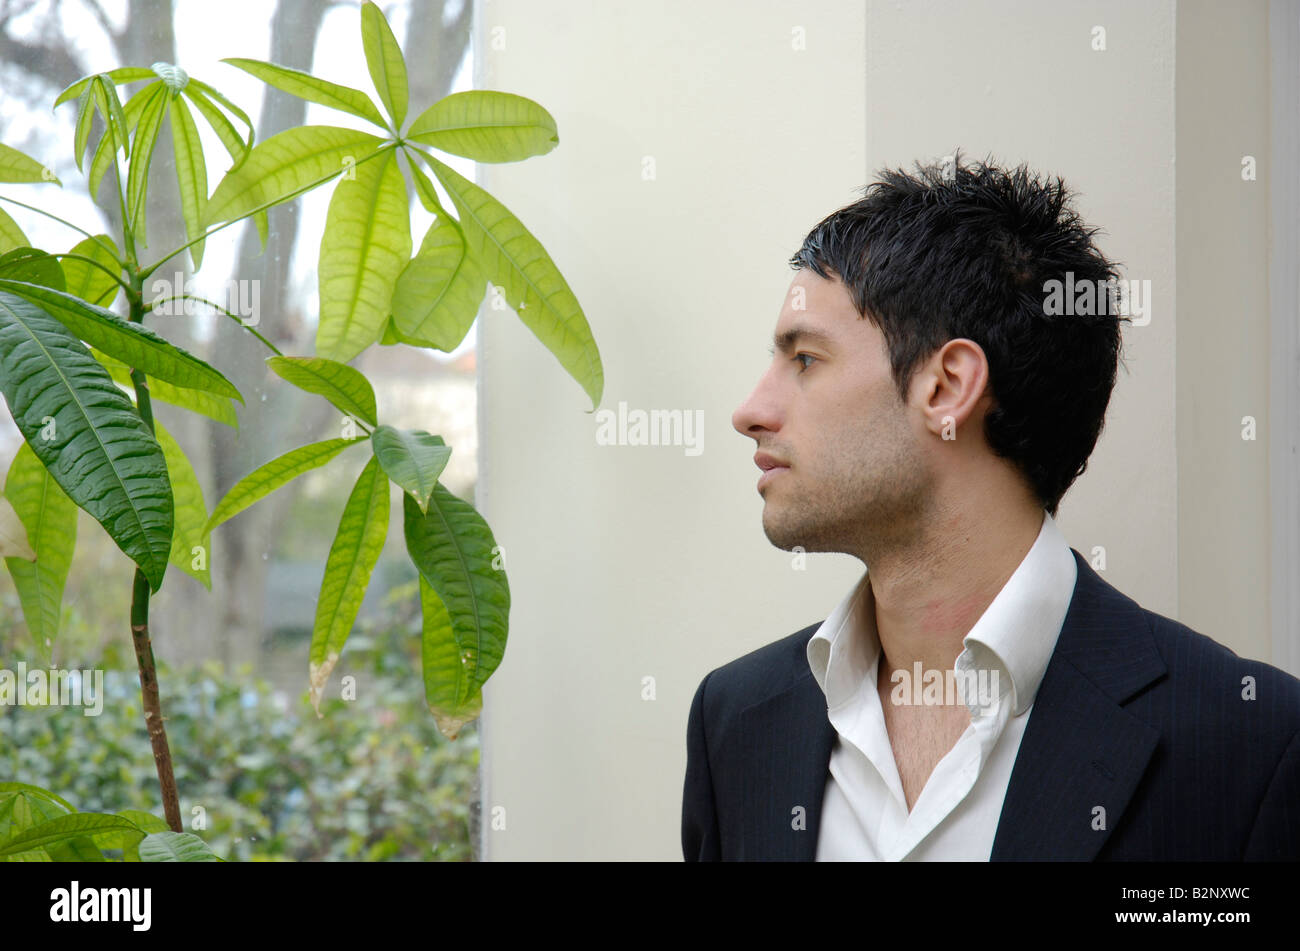 A young business man looking out of the window contemplating environmental issues, ESG investing and sustainable business models concept. Stock Photo